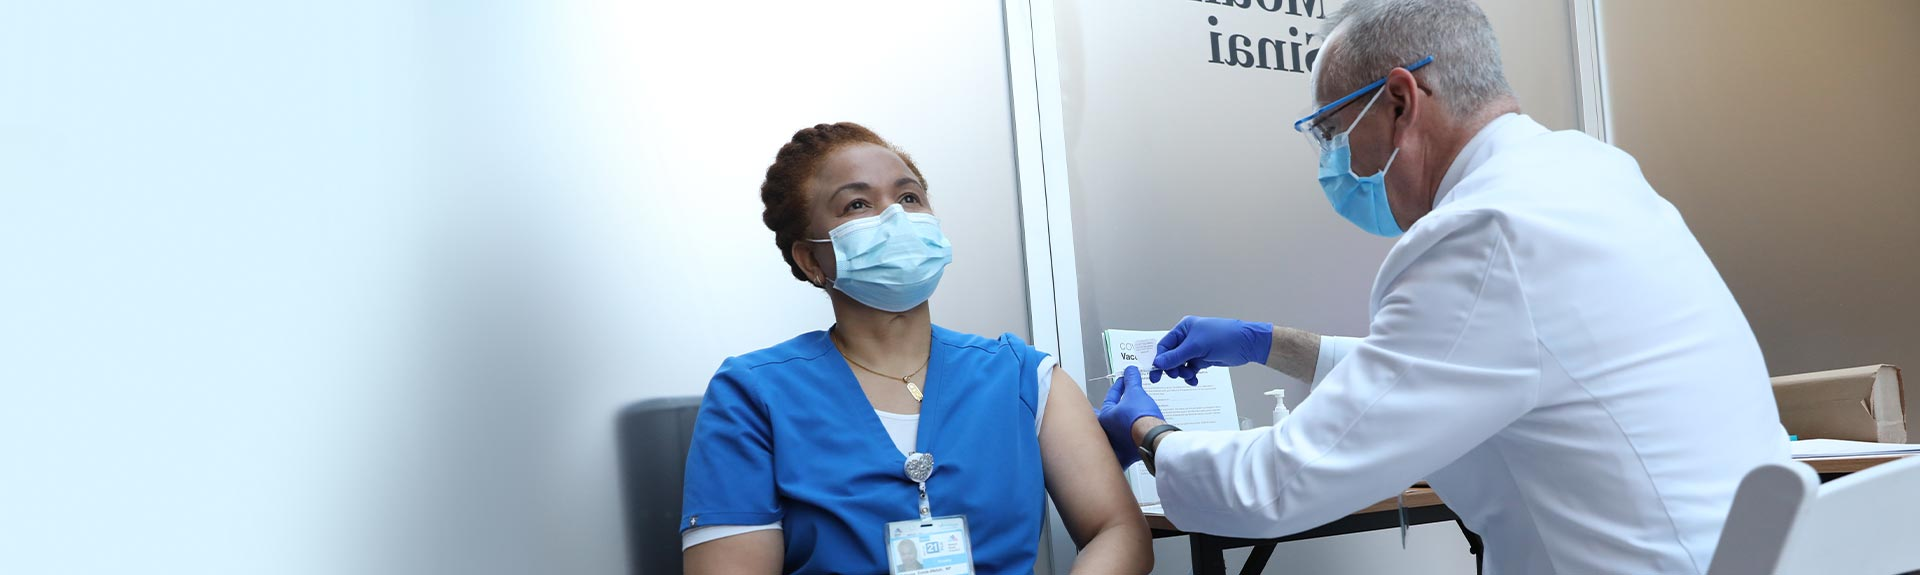 Image of doctor putting vaccine on nurse